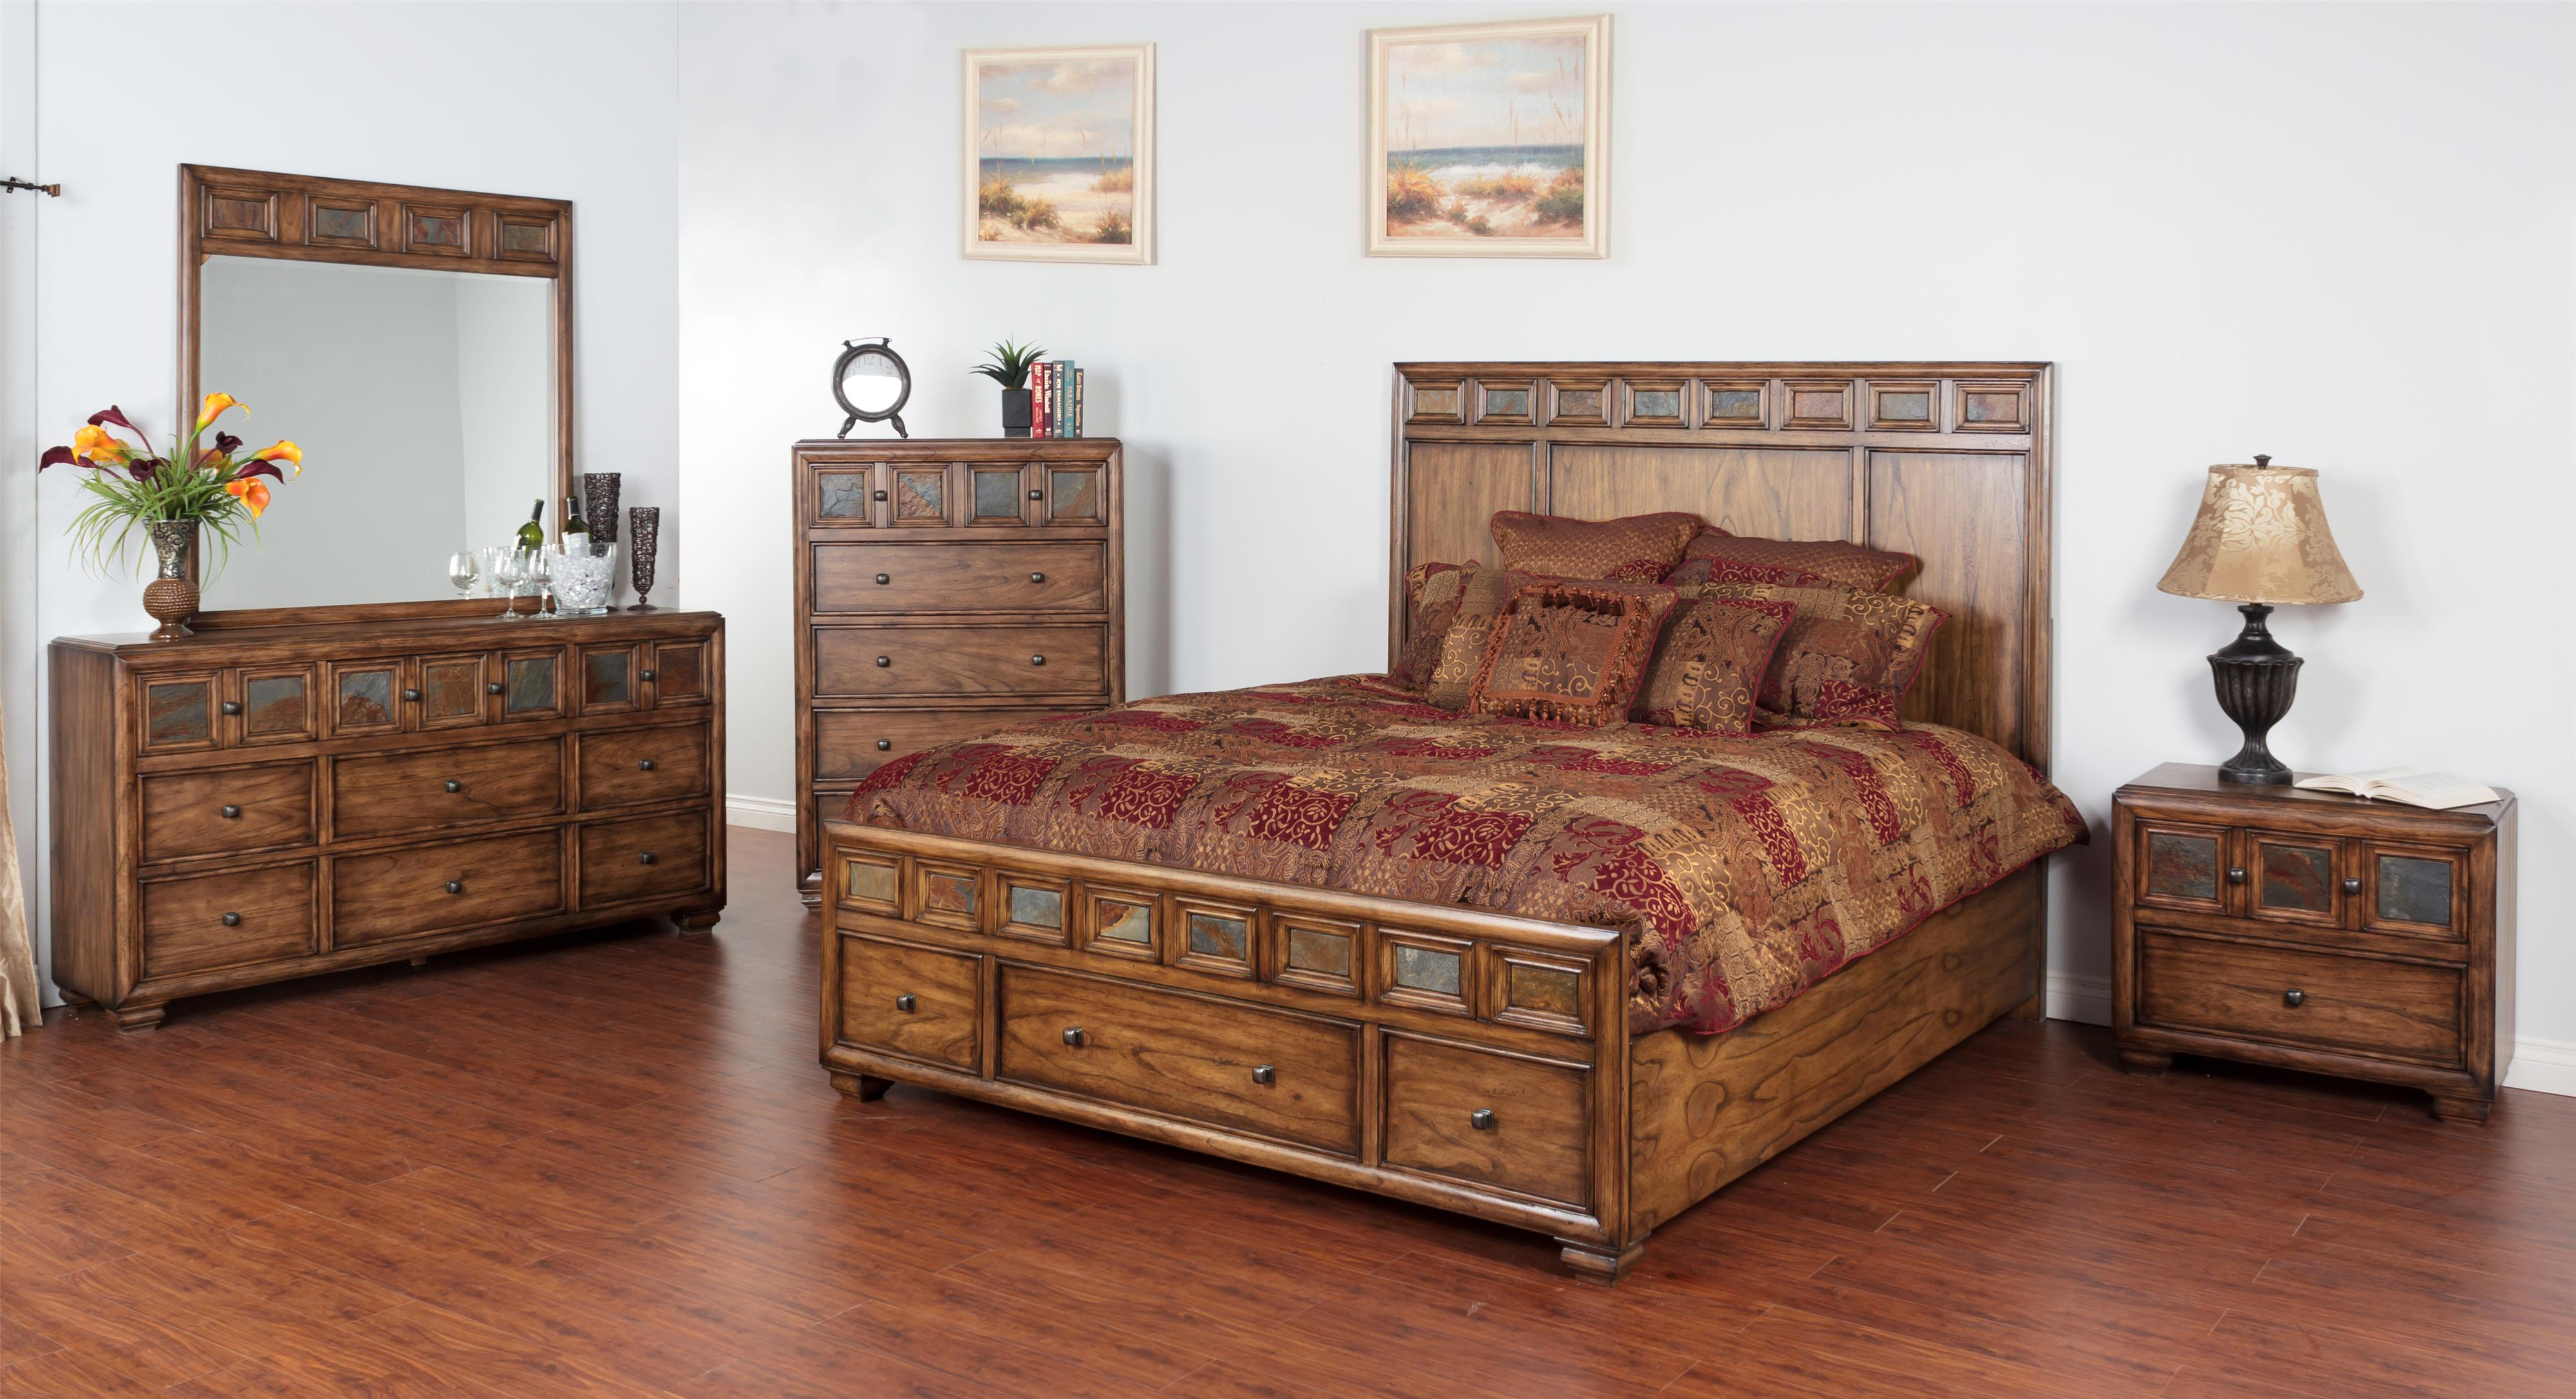 Sunny Designs Coventry Queen Bedroom Group - Item Number: BM Q Bedroom Group 1